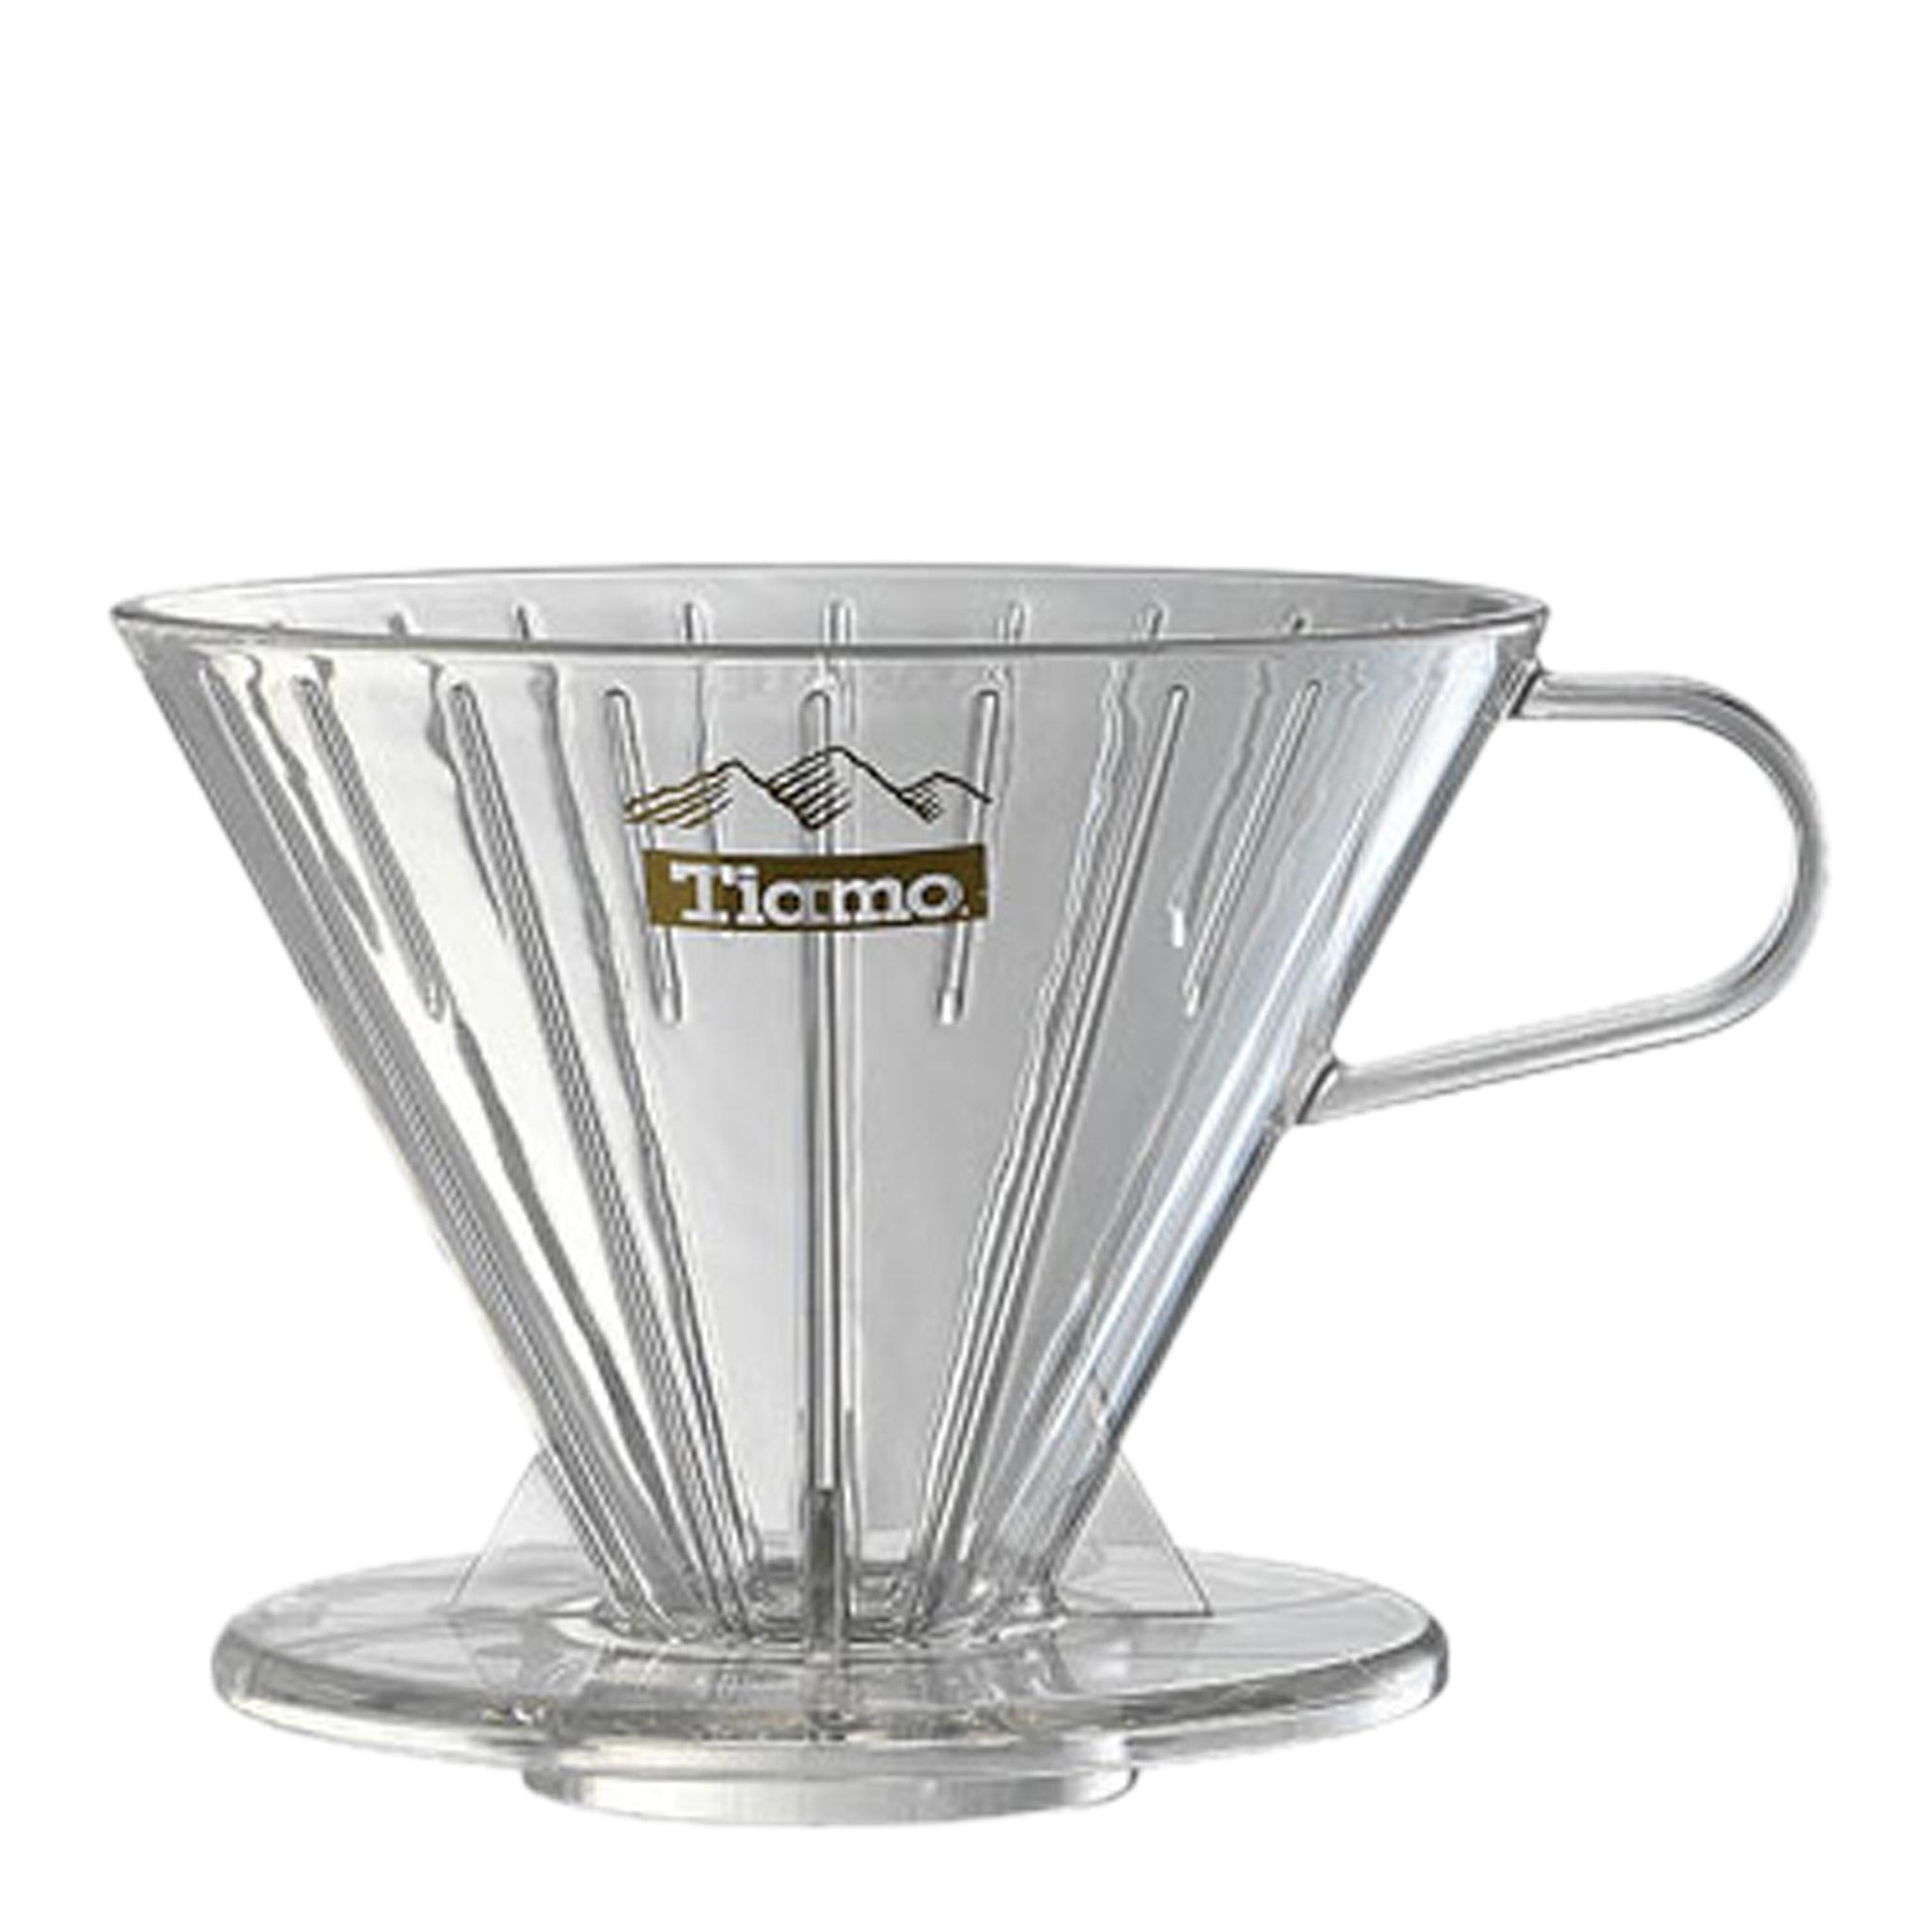 Filter V02 Transparent - Tiamo - Espresso Gear